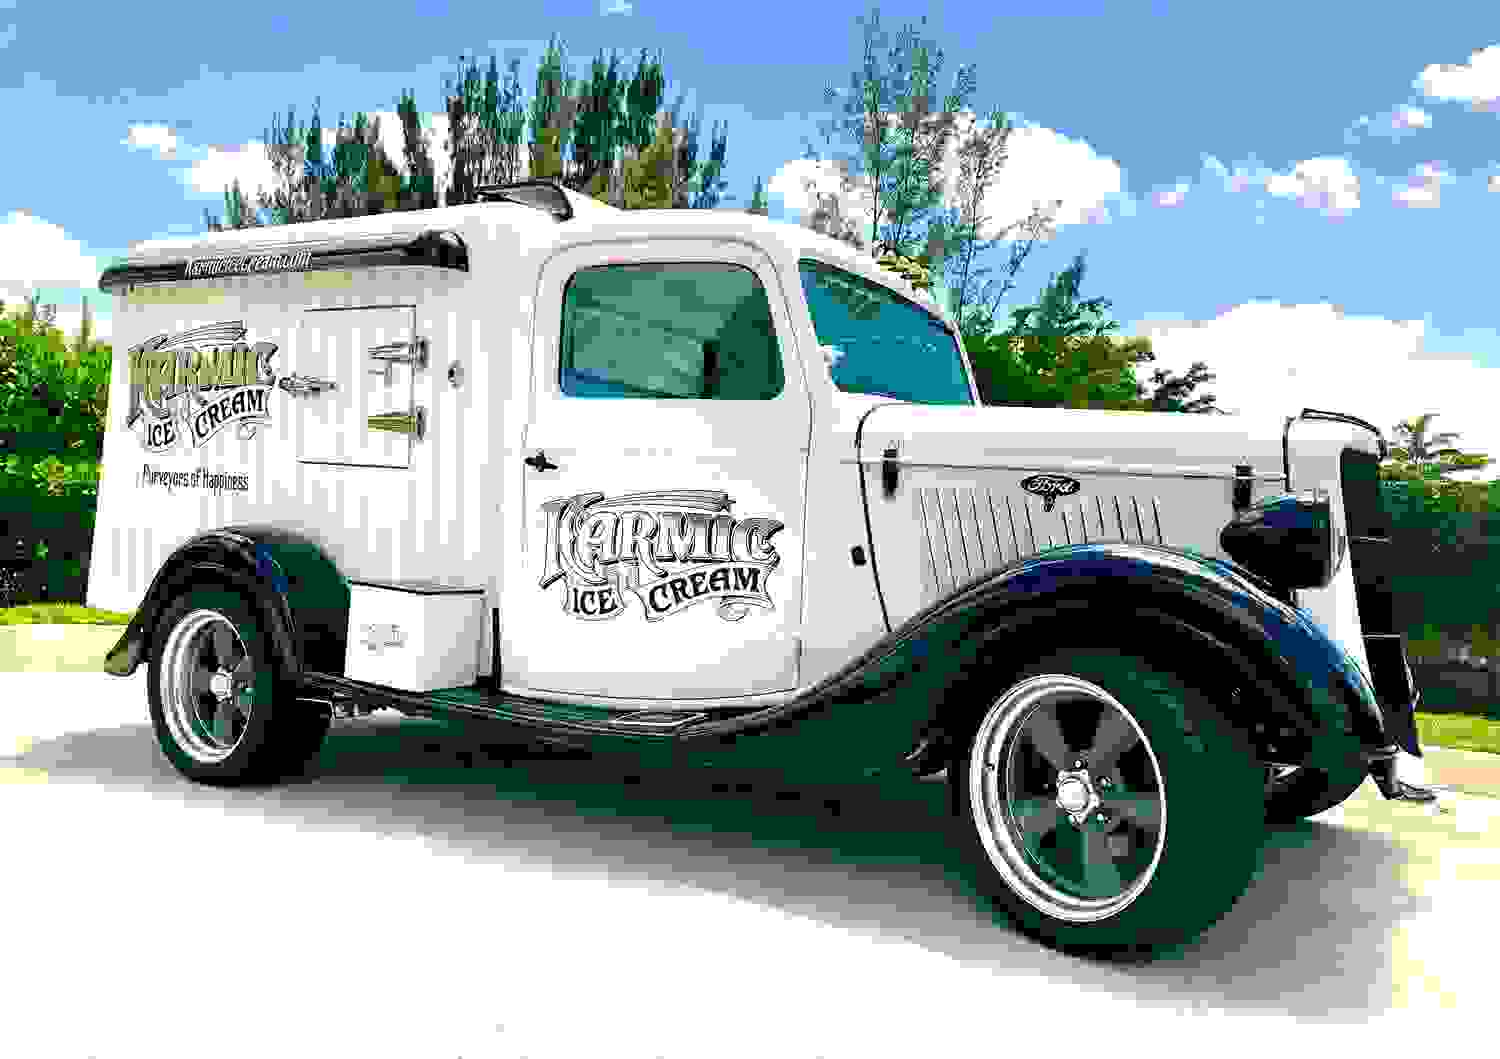 1935 Hot Rod Ice Cream truck rental in Broward, Dade and Palm Beach Counties